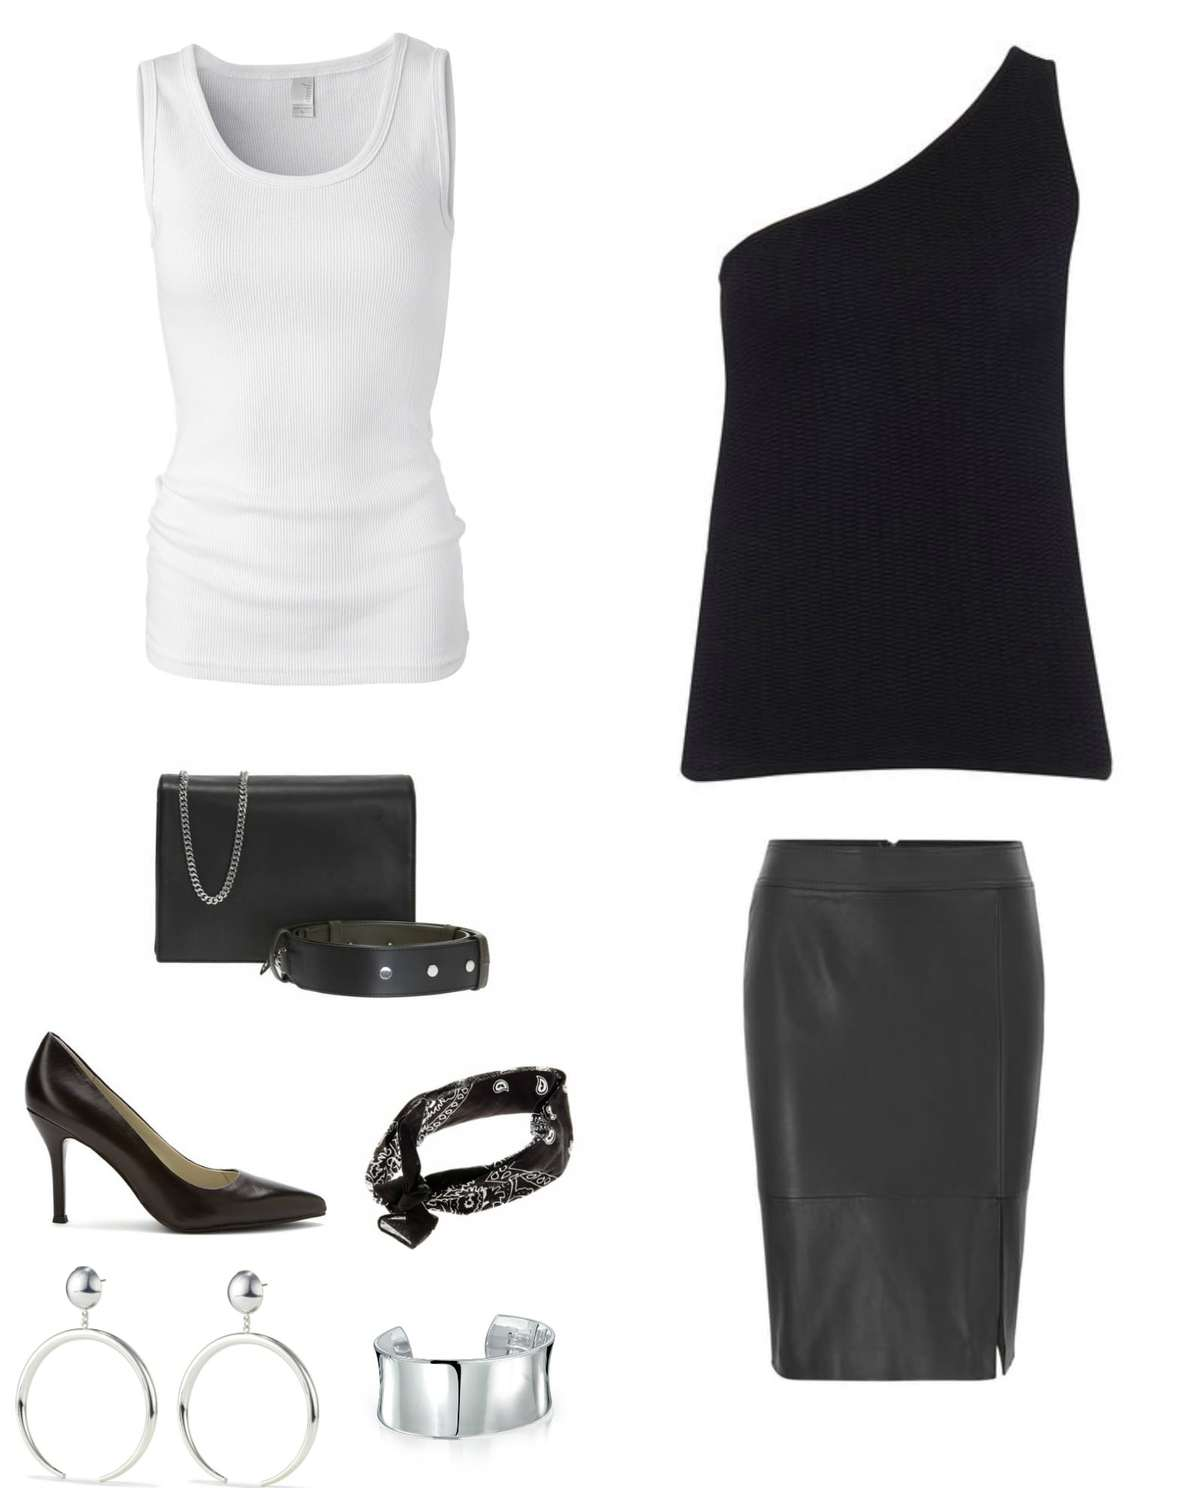 Image is of a black leather pencil skirt styled with a white ribbed tank under a black cashmere one shouldered tank sweater. Accessories are a black handbag, black pumps, black bandana, silver statement earrings, and a large silver cuff bracelet.